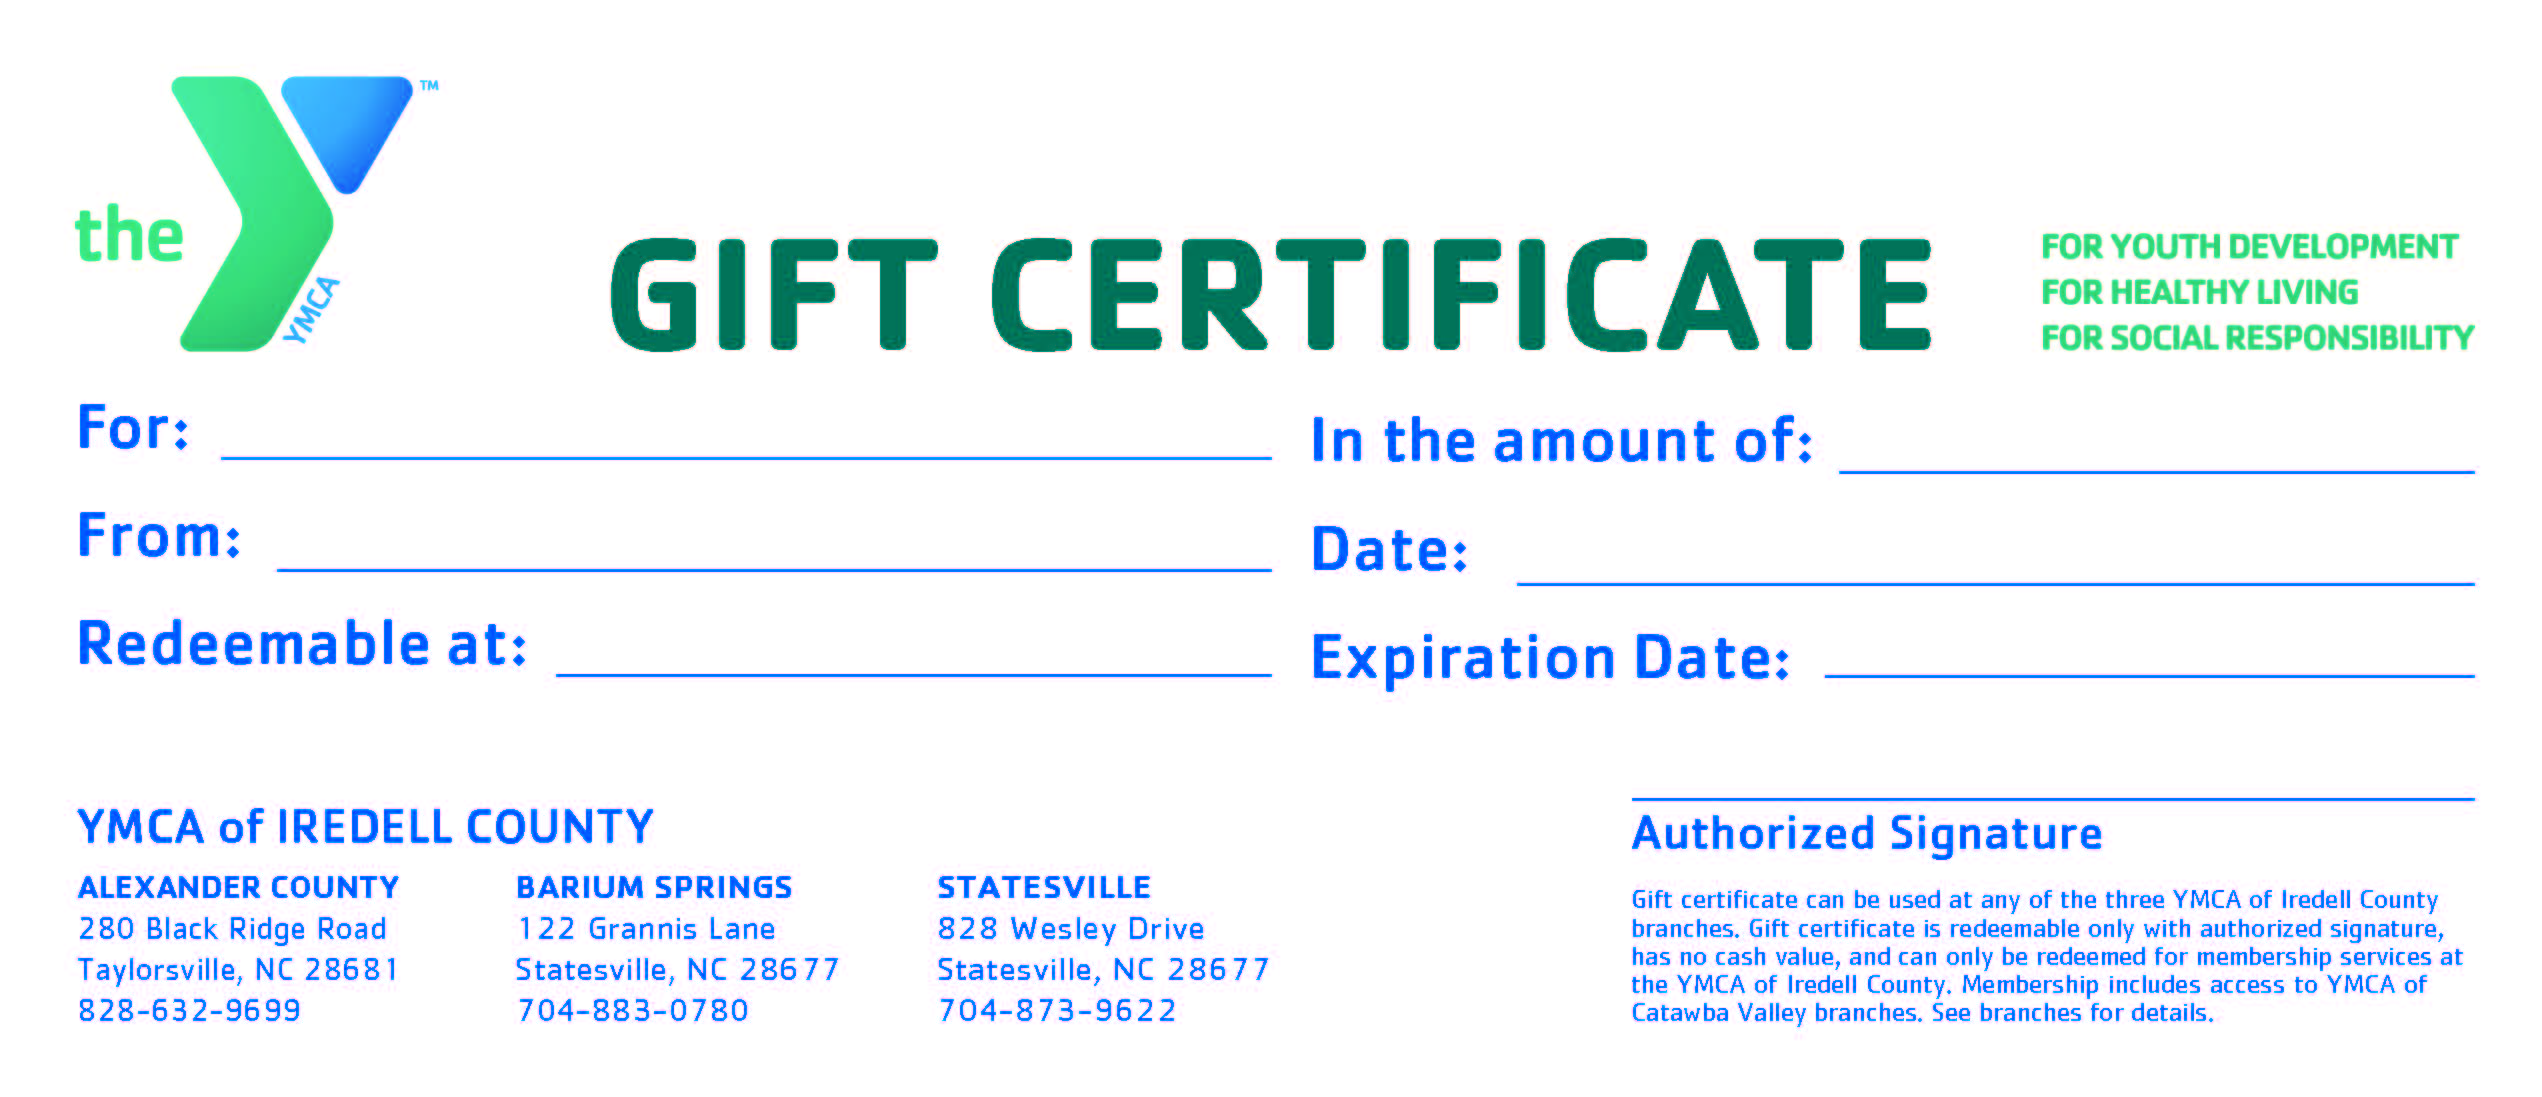 purchase y gift certificates at any of the three ymca of iredell ...